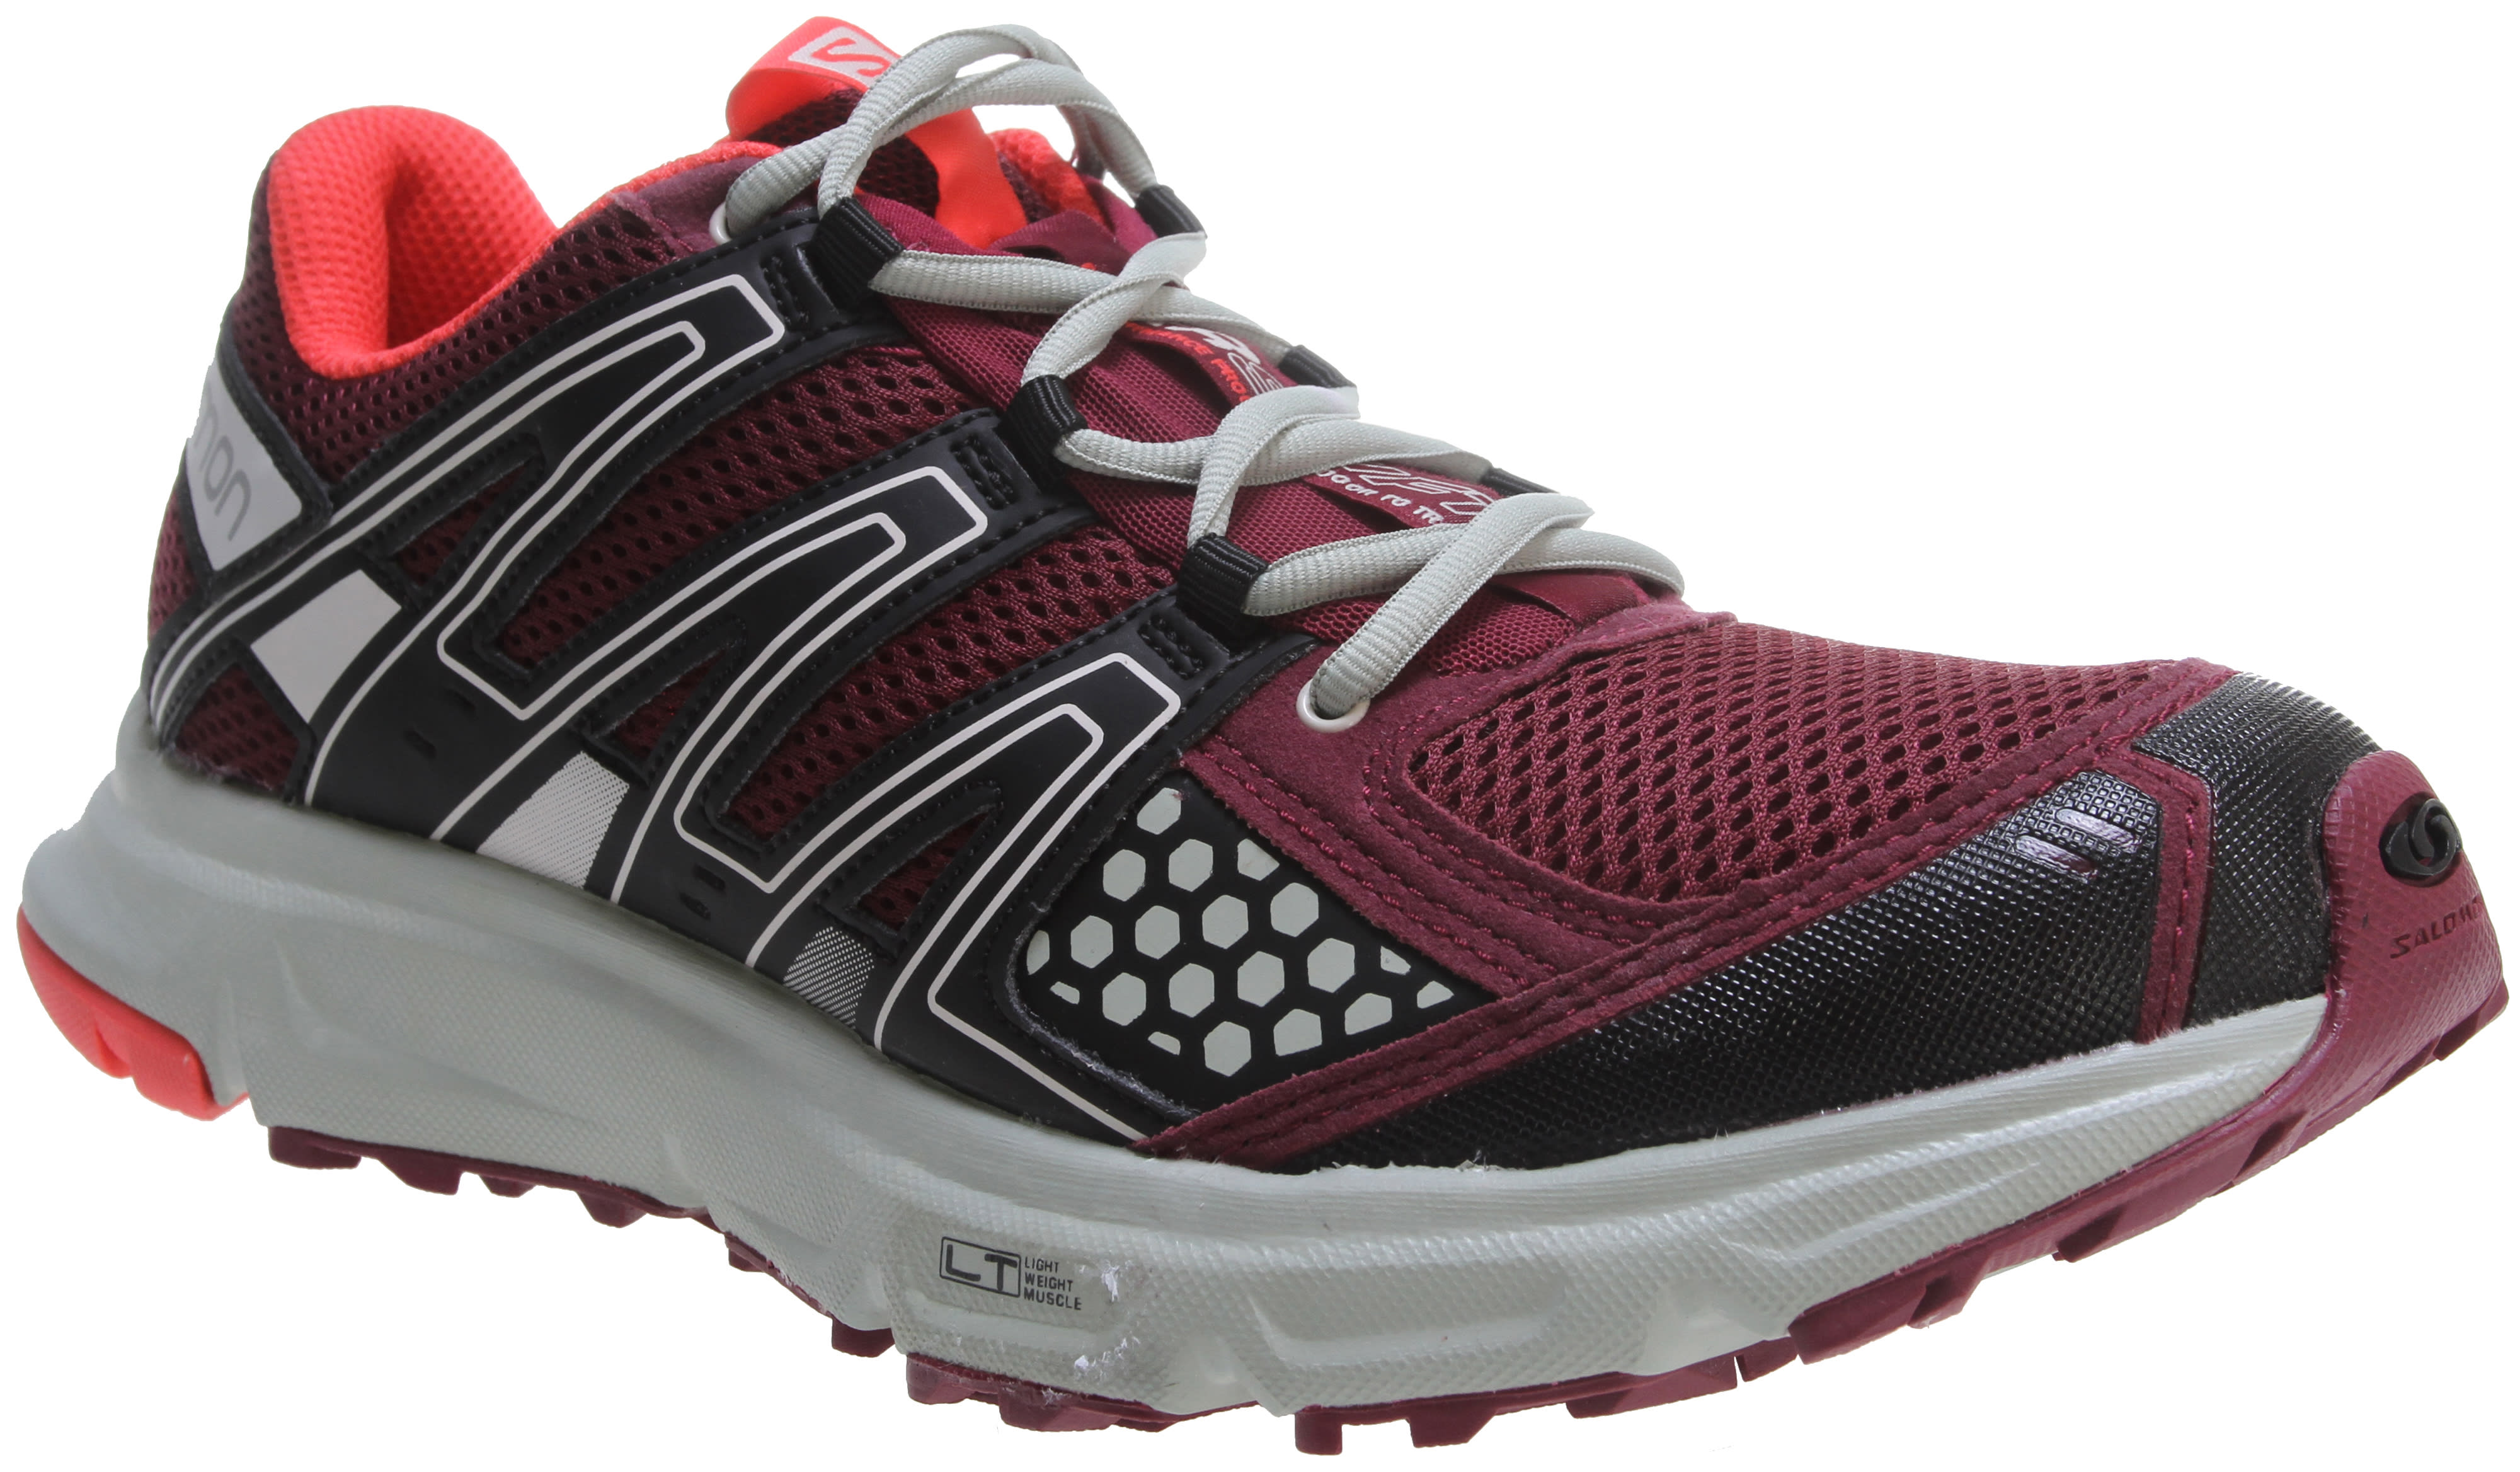 694f3792767 Up Discounted gt  To Xr Shift Salomon Buy Off48 OngR7PFWW